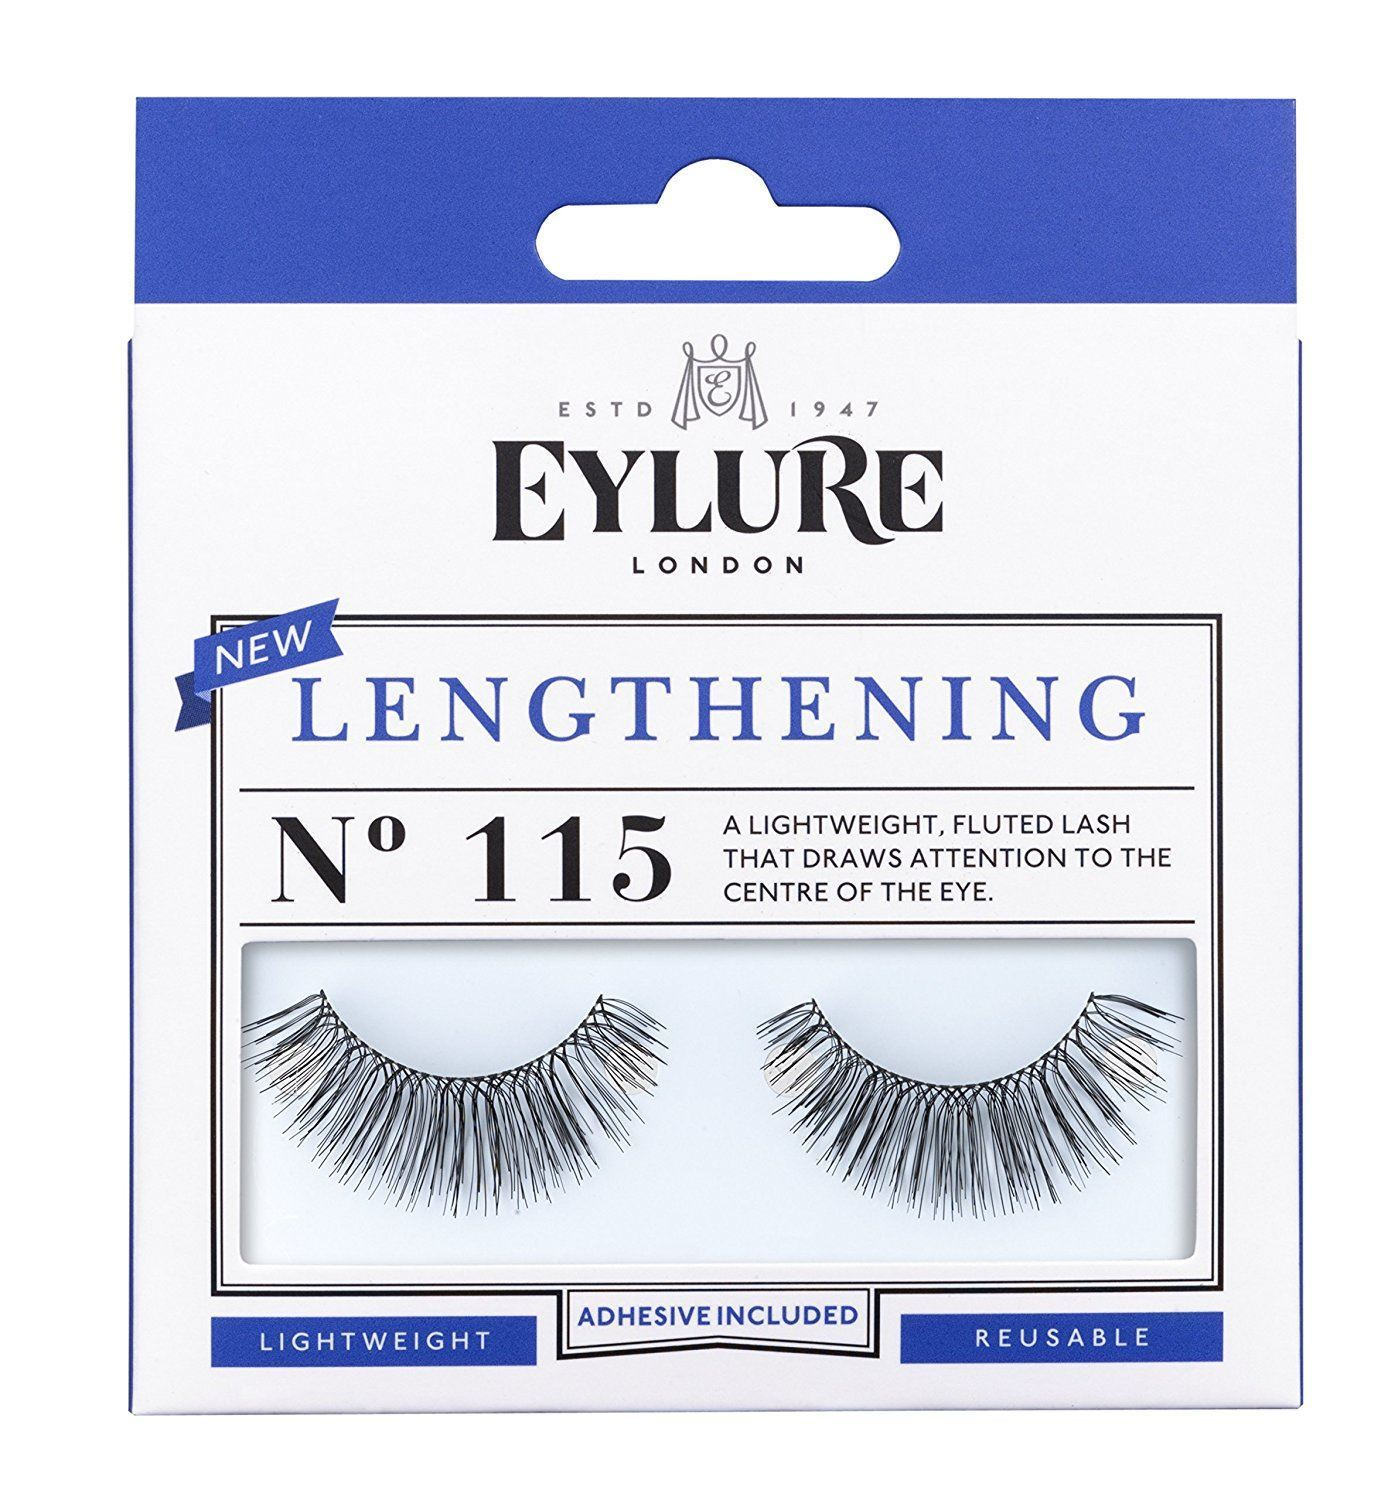 Eylure Naturalites LENGTHENING Lashes N° 115